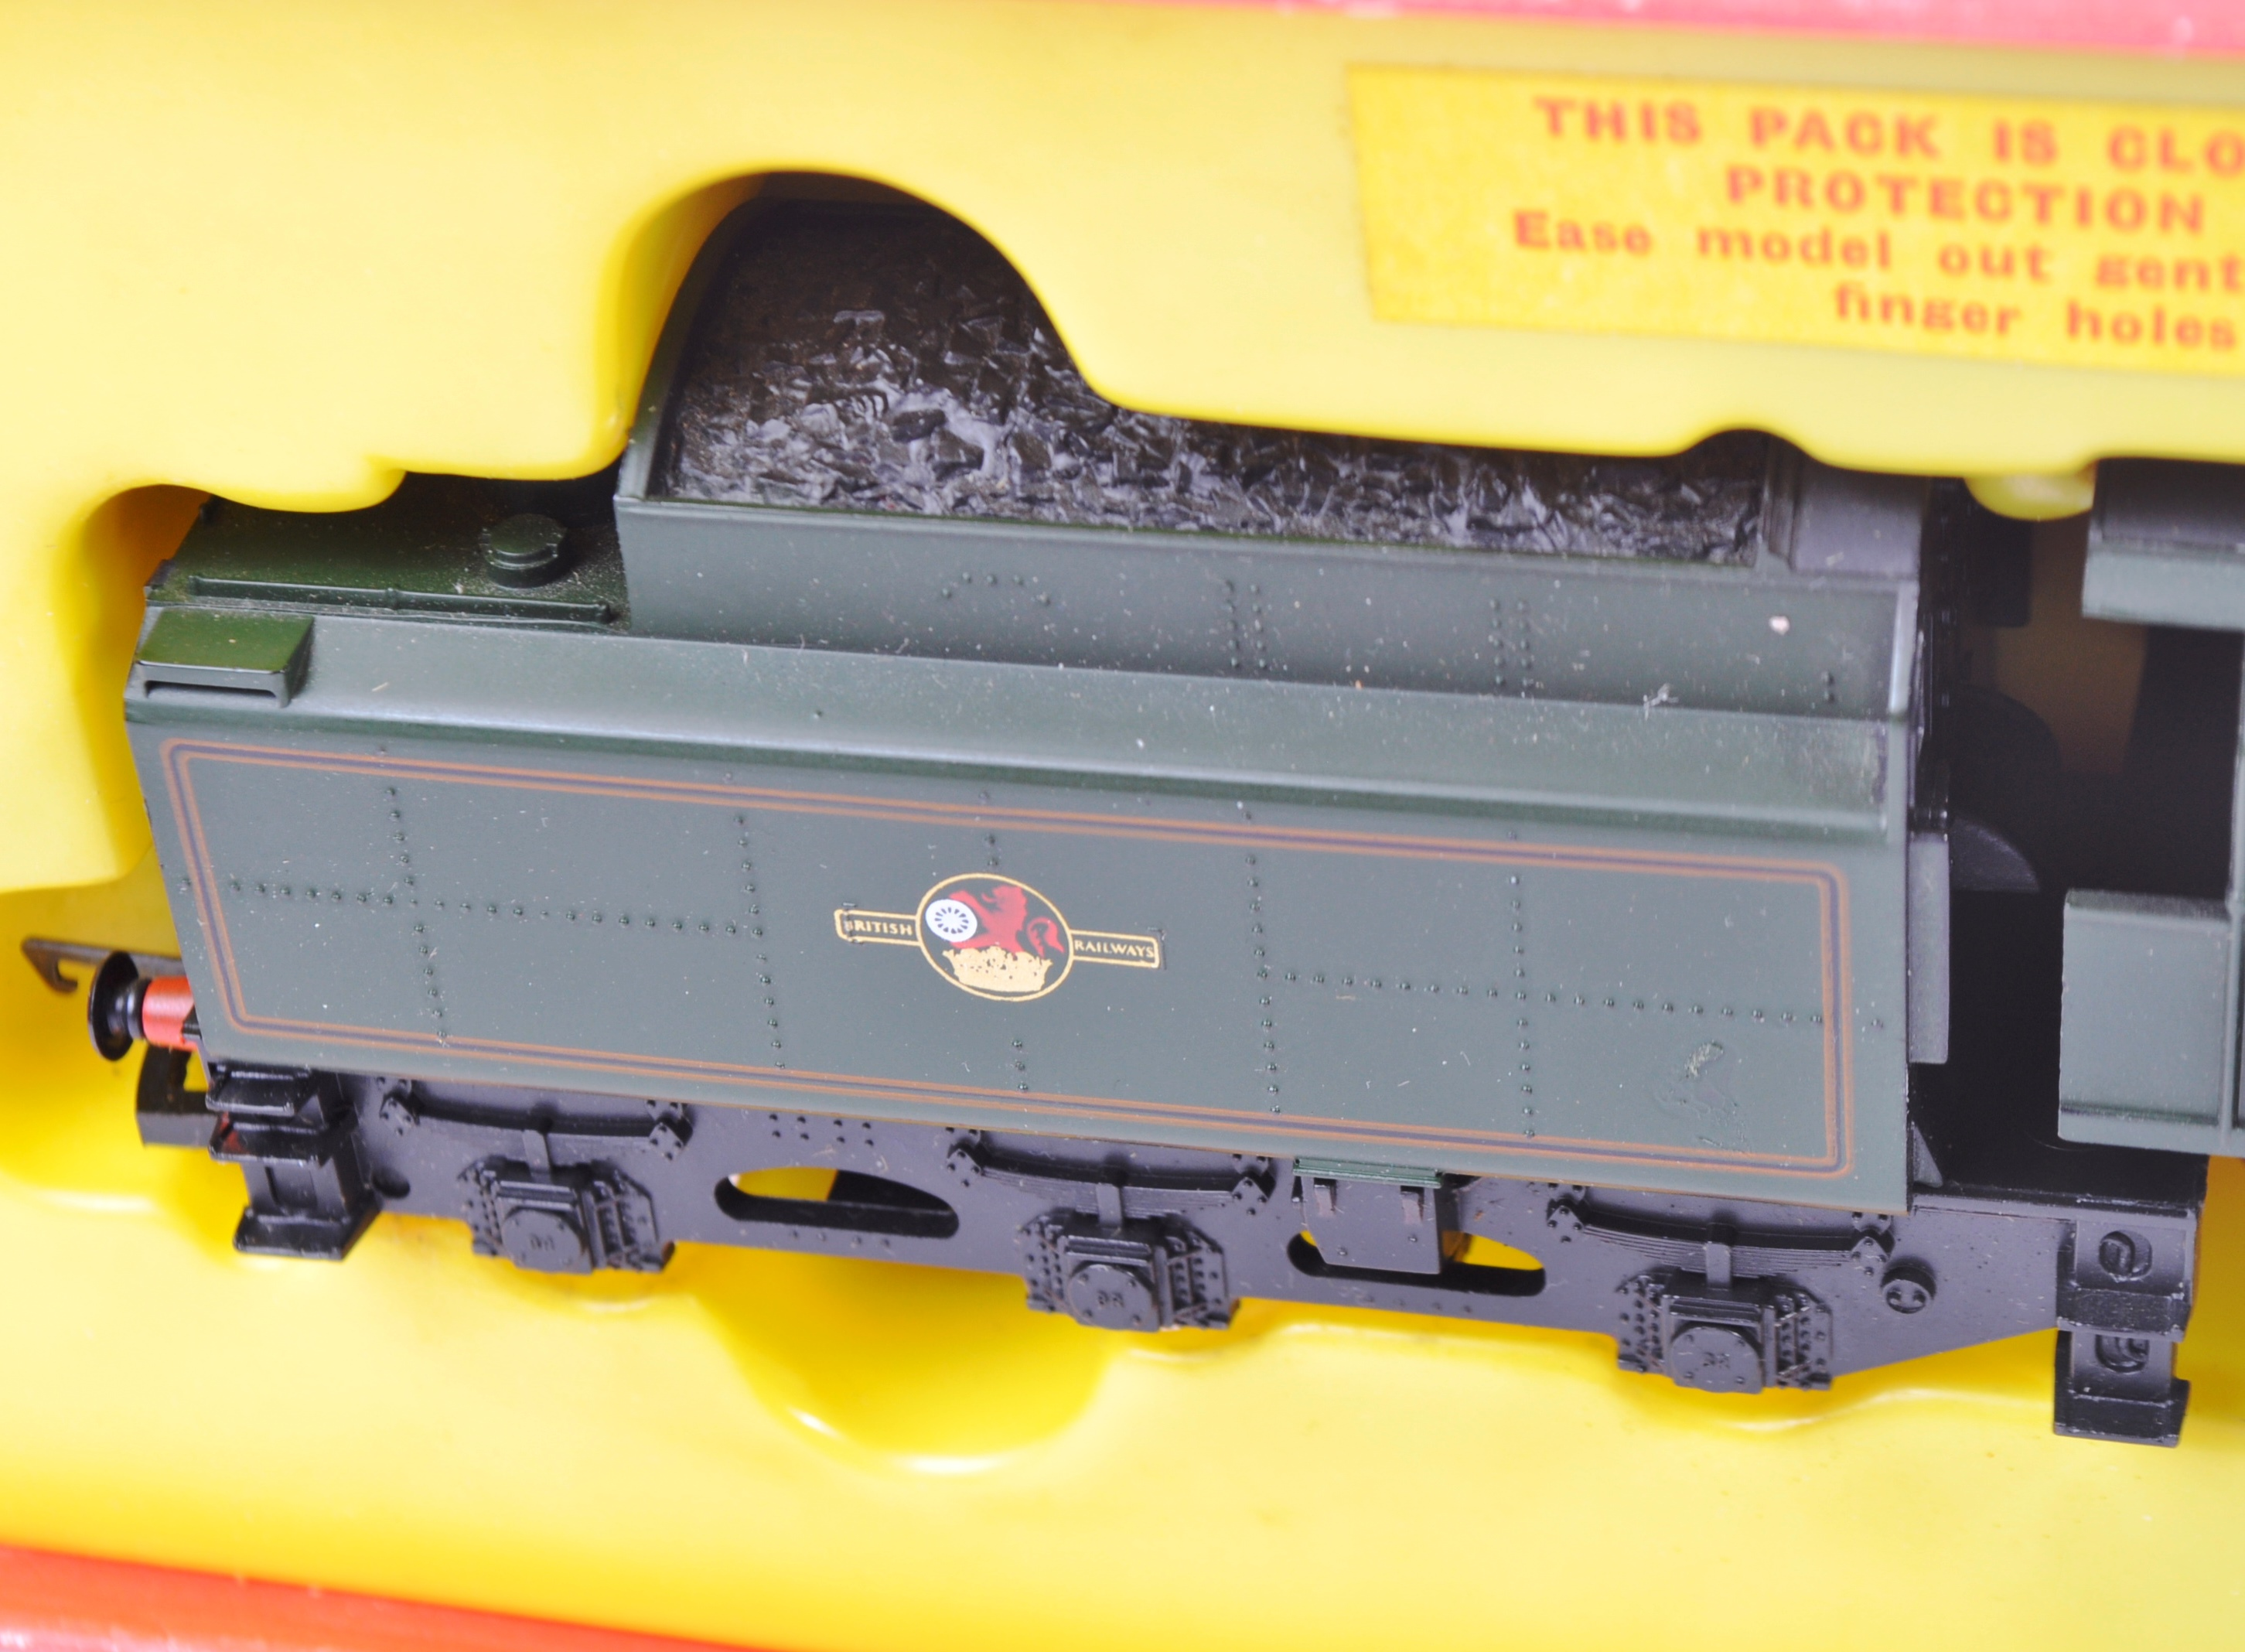 TWO VINTAGE HORNBY & TRIANG MODEL RAILWAY TRAINSET LOCOMOTIVES - Image 5 of 6